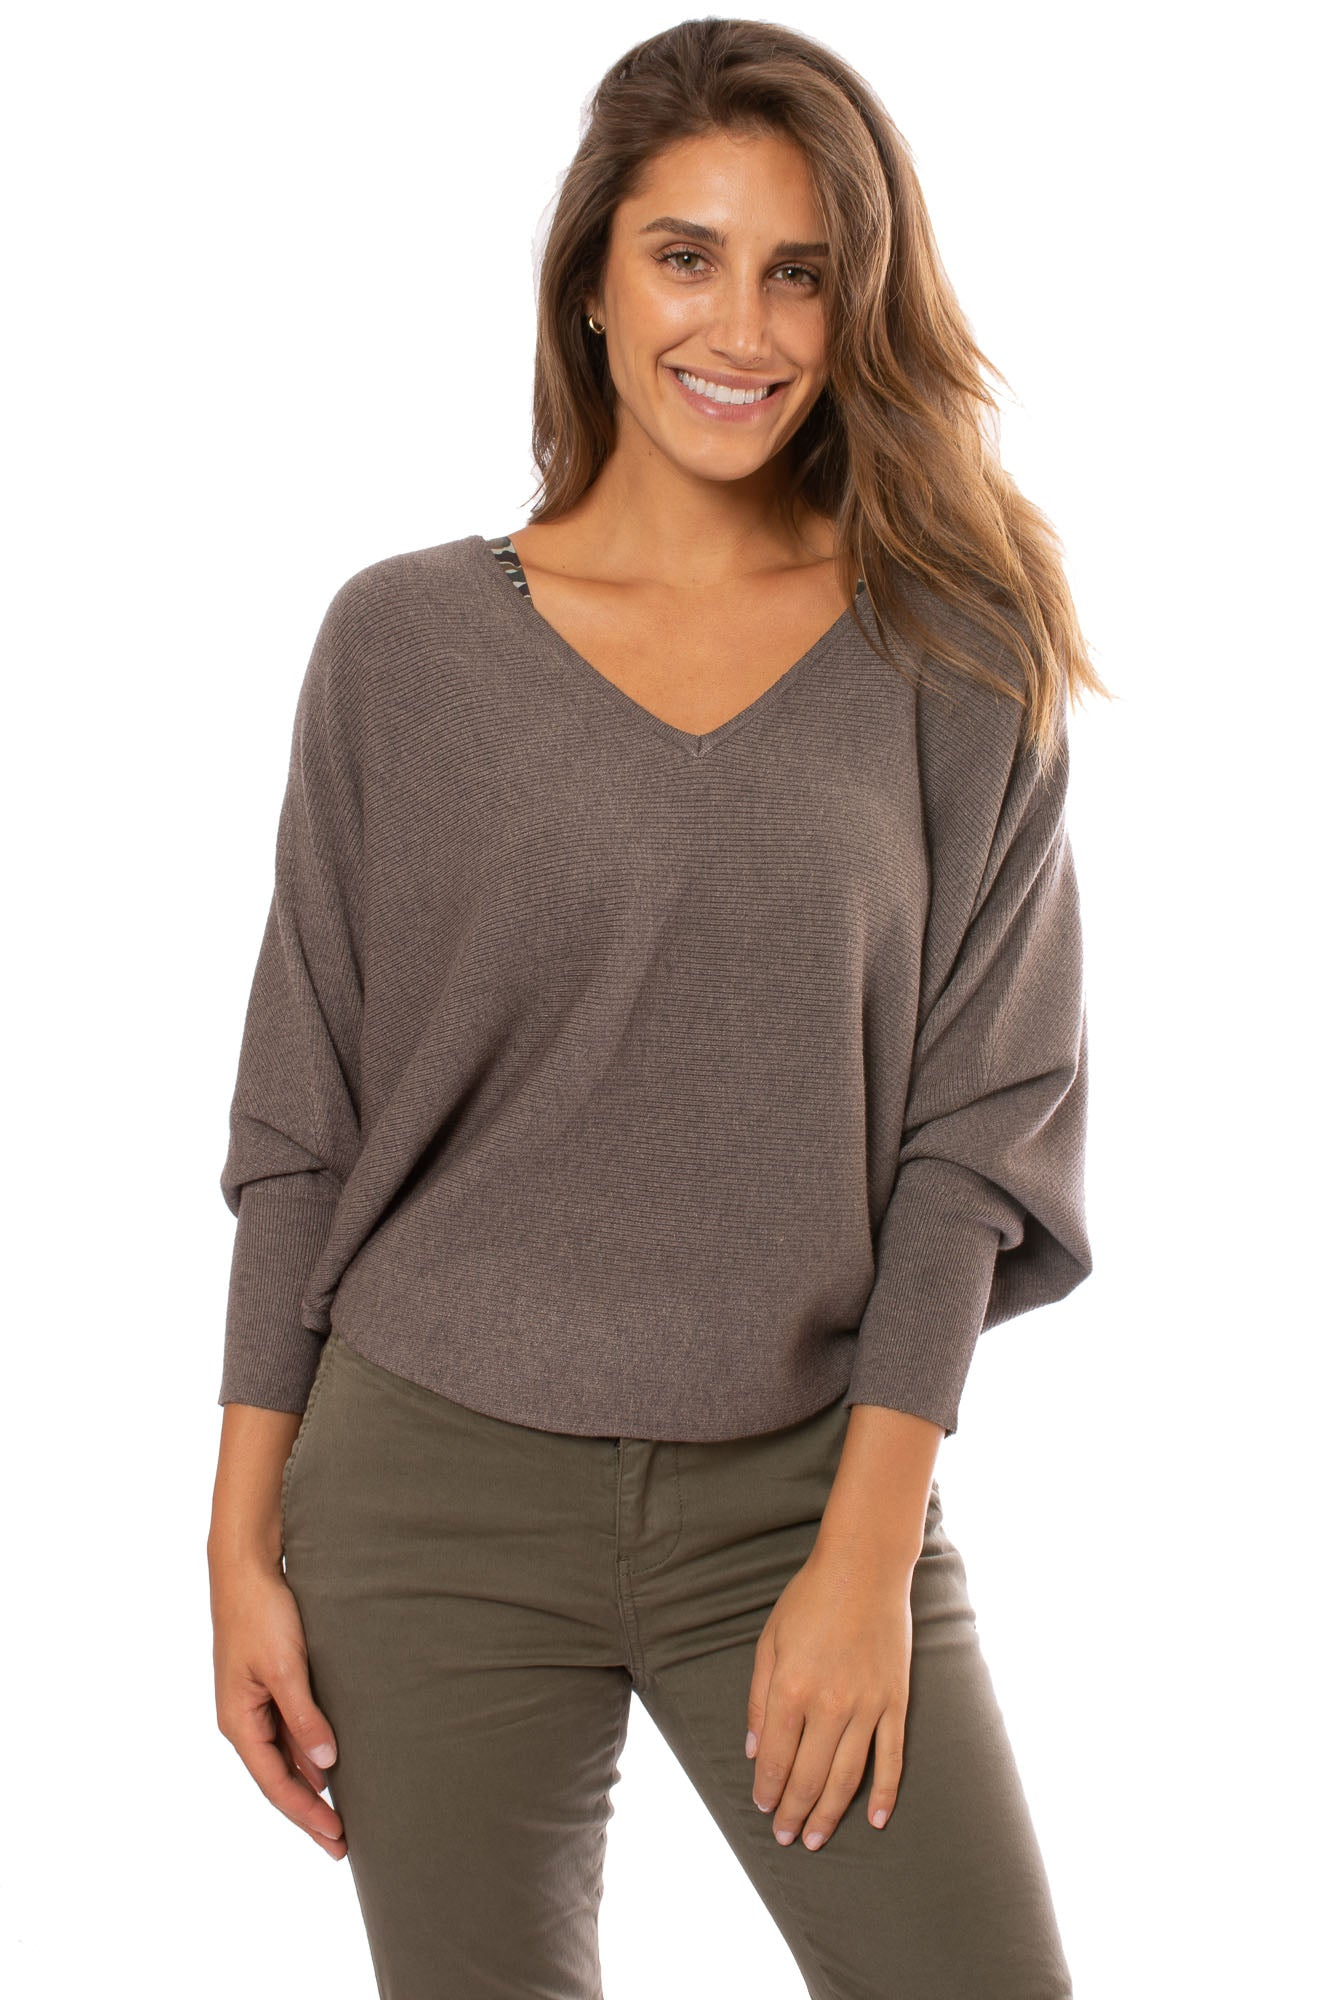 Kerisma - Dolman Deep V Neck Ribbed Sweater (G550V, Charcoal)